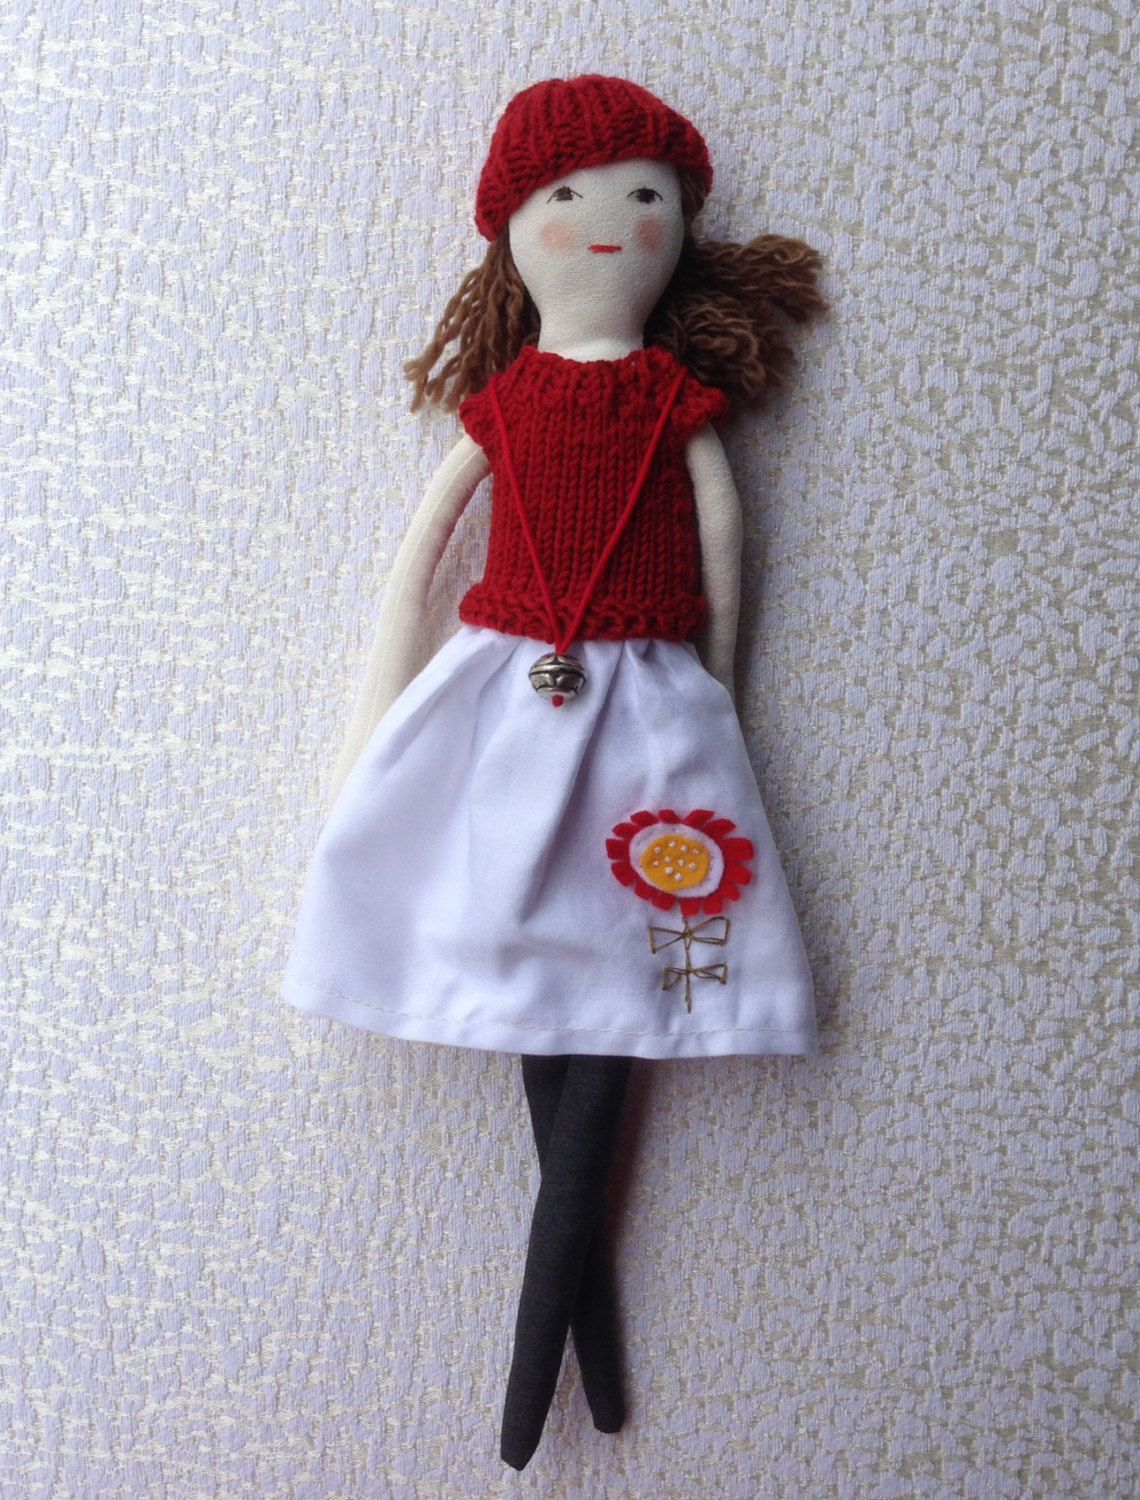 Cloth doll with clothes Handmade fabric doll doll set by Dollisimo